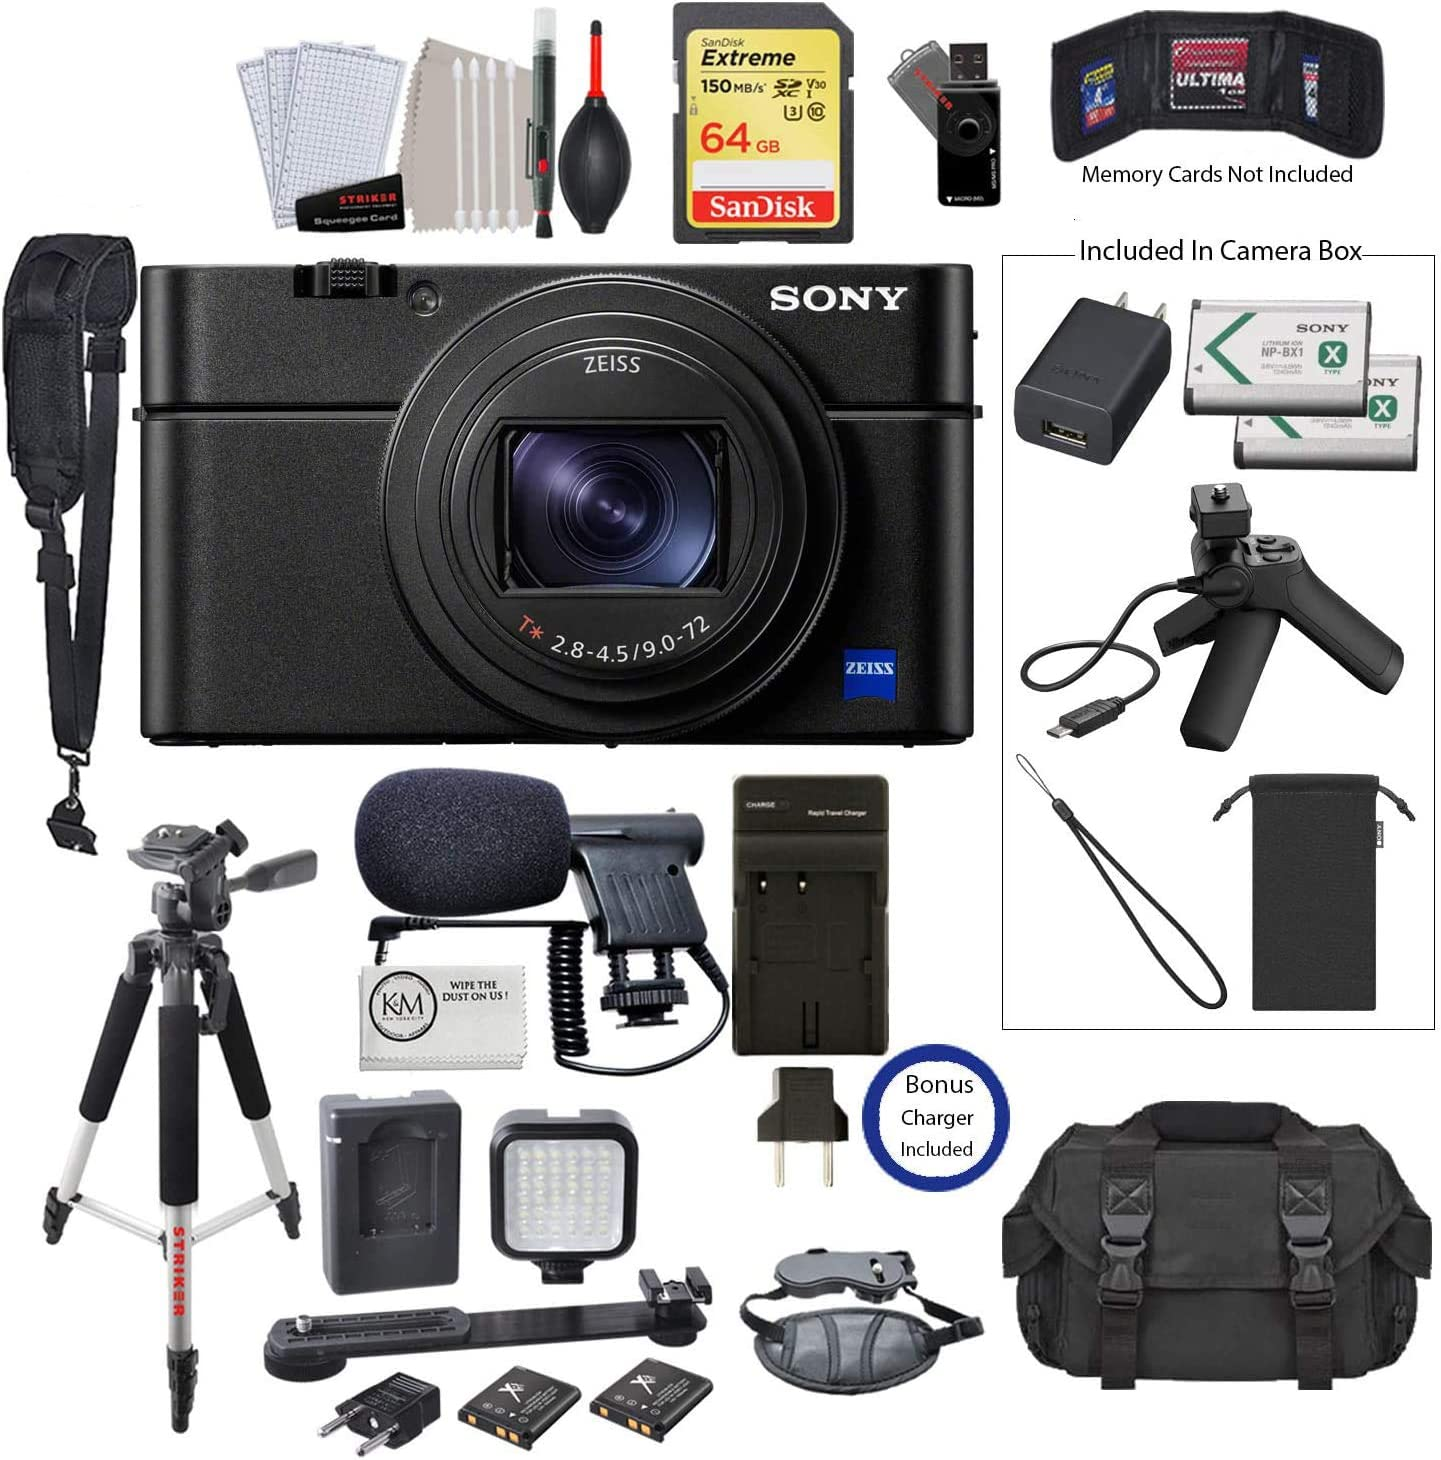 Sony Cyber-Shot DSC-RX100 VII Digital Camera with Shooting Grip Kit and Video Bundle: Includes 64GB Extreme Memory Card, Battery Charger for NP-BX1, Led Kit, Microphone, and 12 Tripod